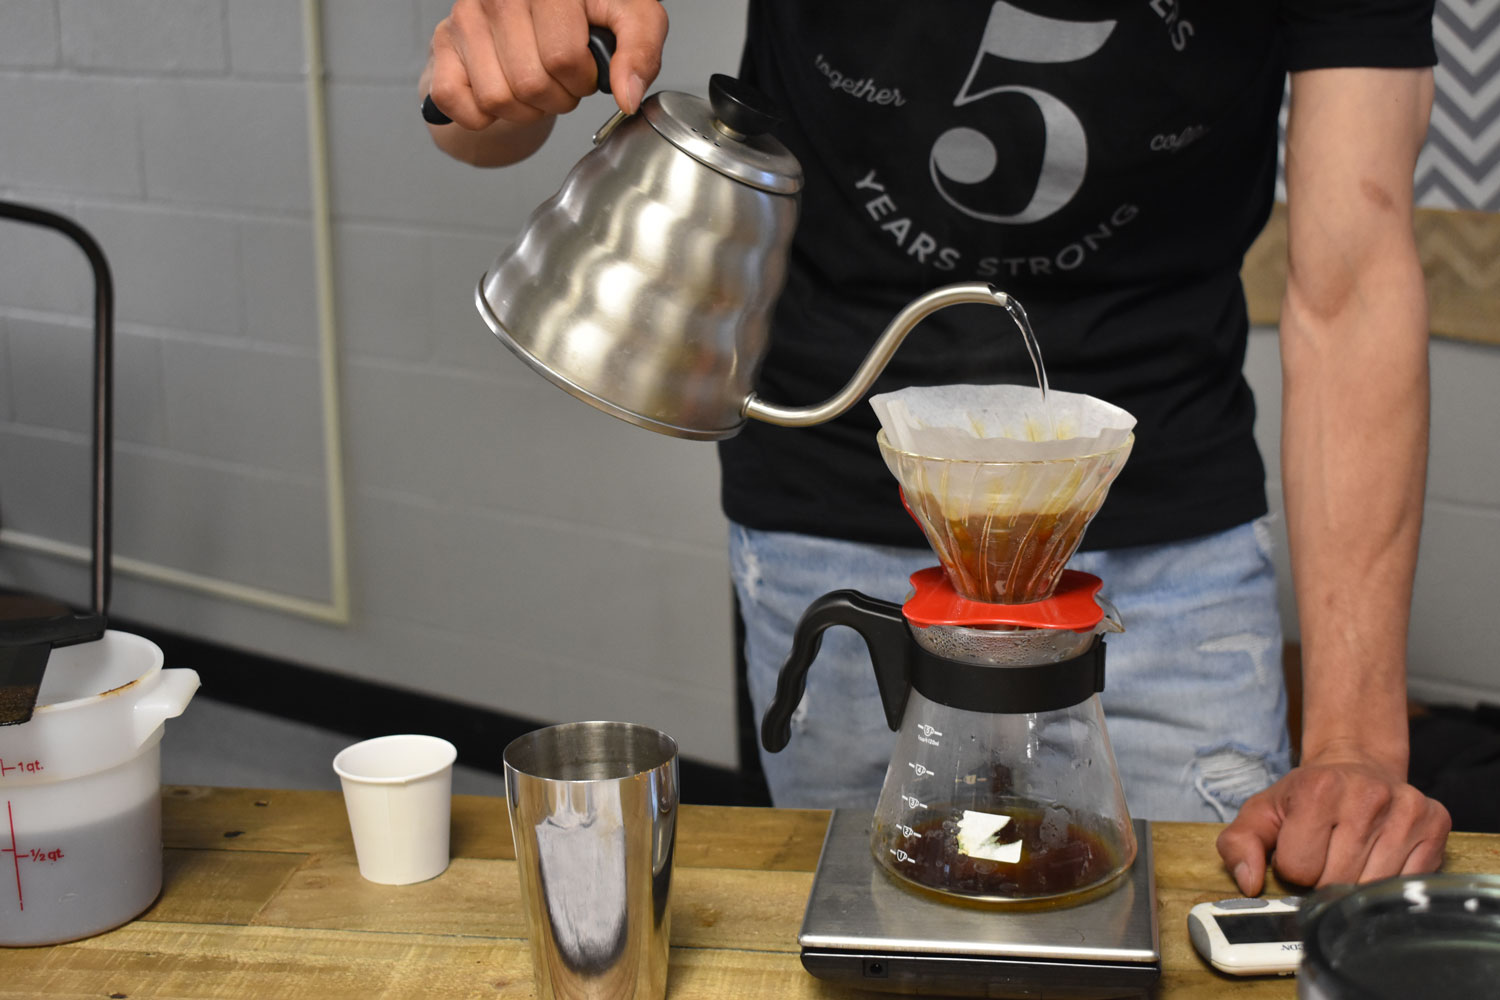 One of the many ways to brew coffee is the pour over method. It starts by wetting the filter then pouring the coffee. Then the coffee must be stirred about five times then the more water is added and must be stirred again. The coffee can be seen dripping down.